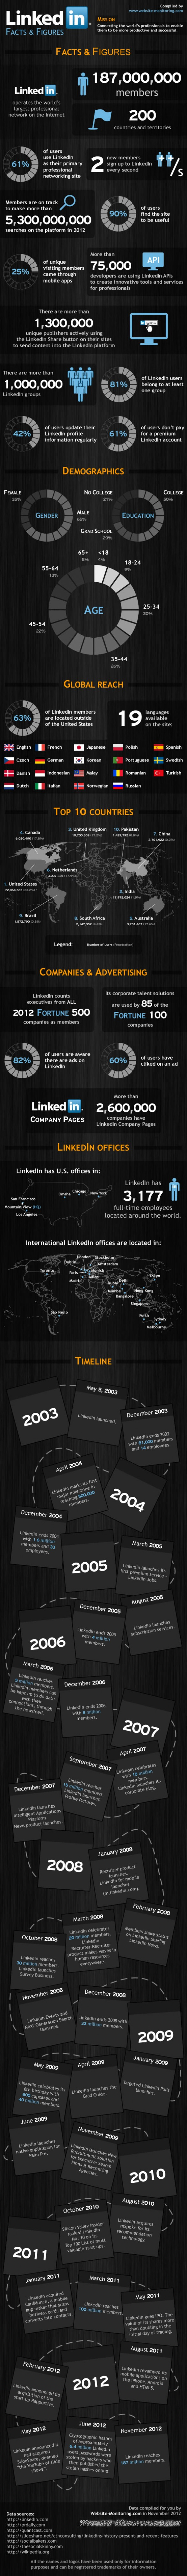 LinkedIn Facts and Figures [INFOGRAPHIC]